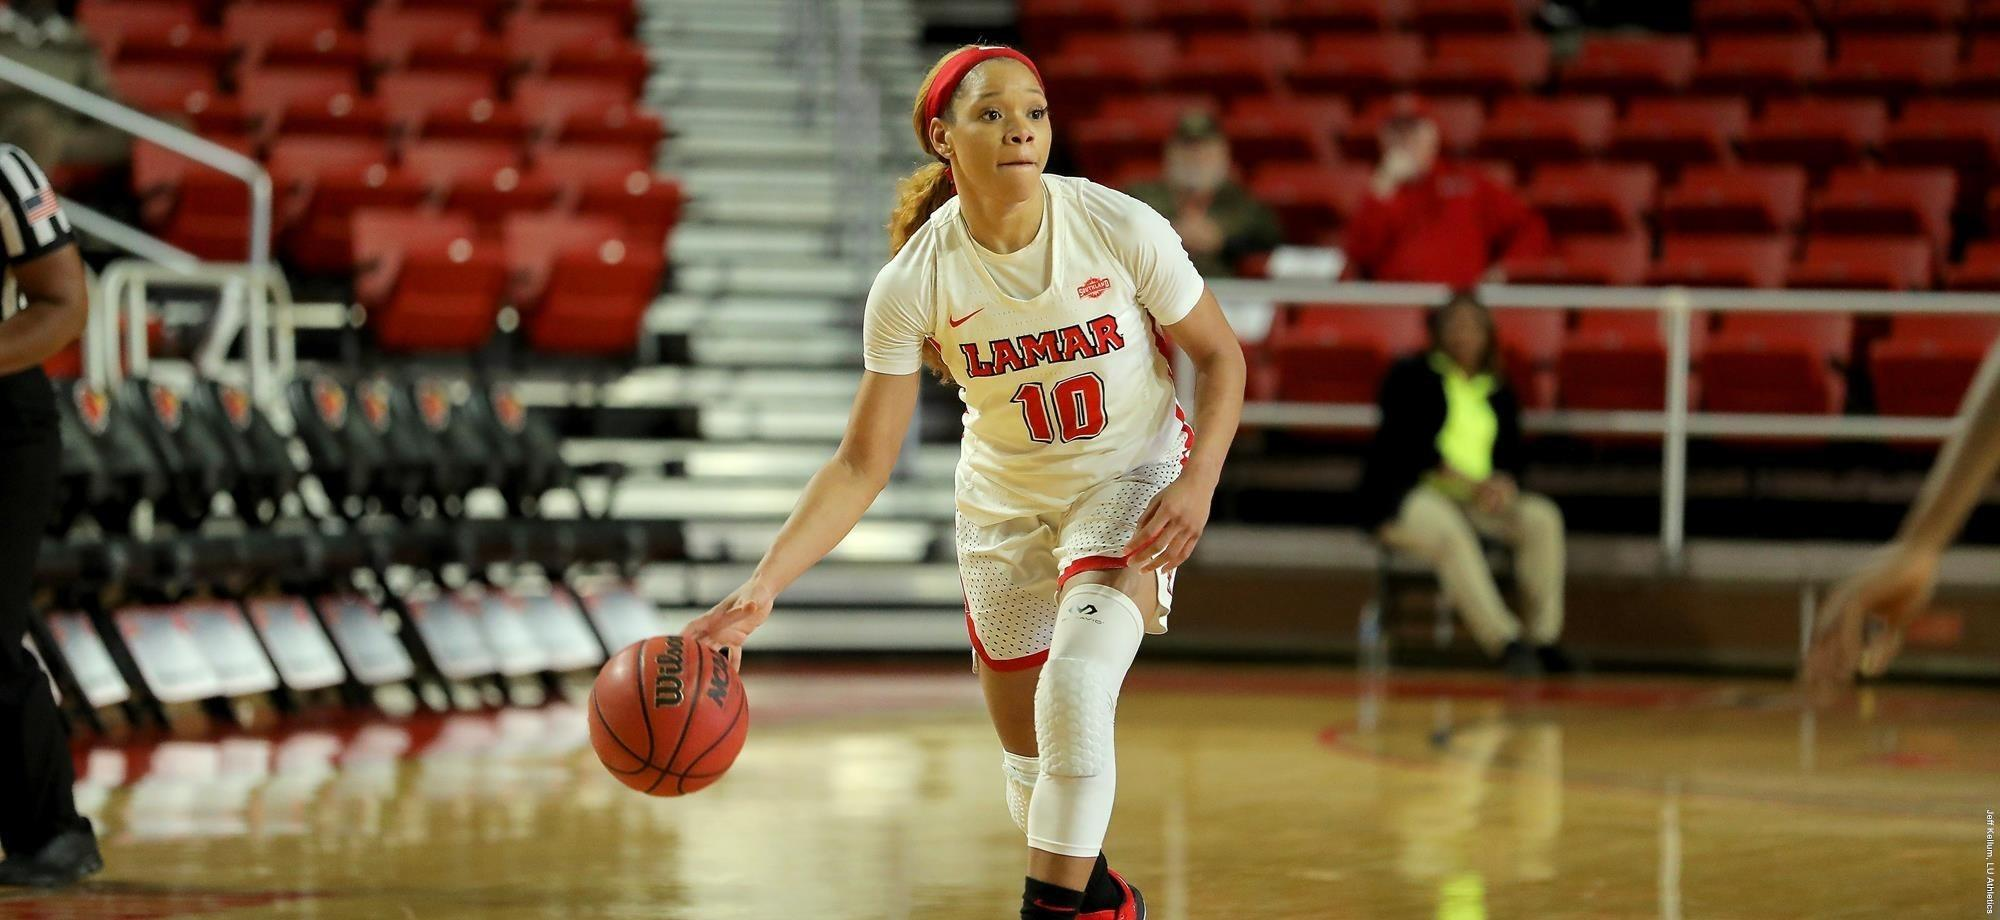 Chastadie Barrs is chasing records for Lamar. She also has the Lady Cardinals undefeated so far in Southland Conference play.